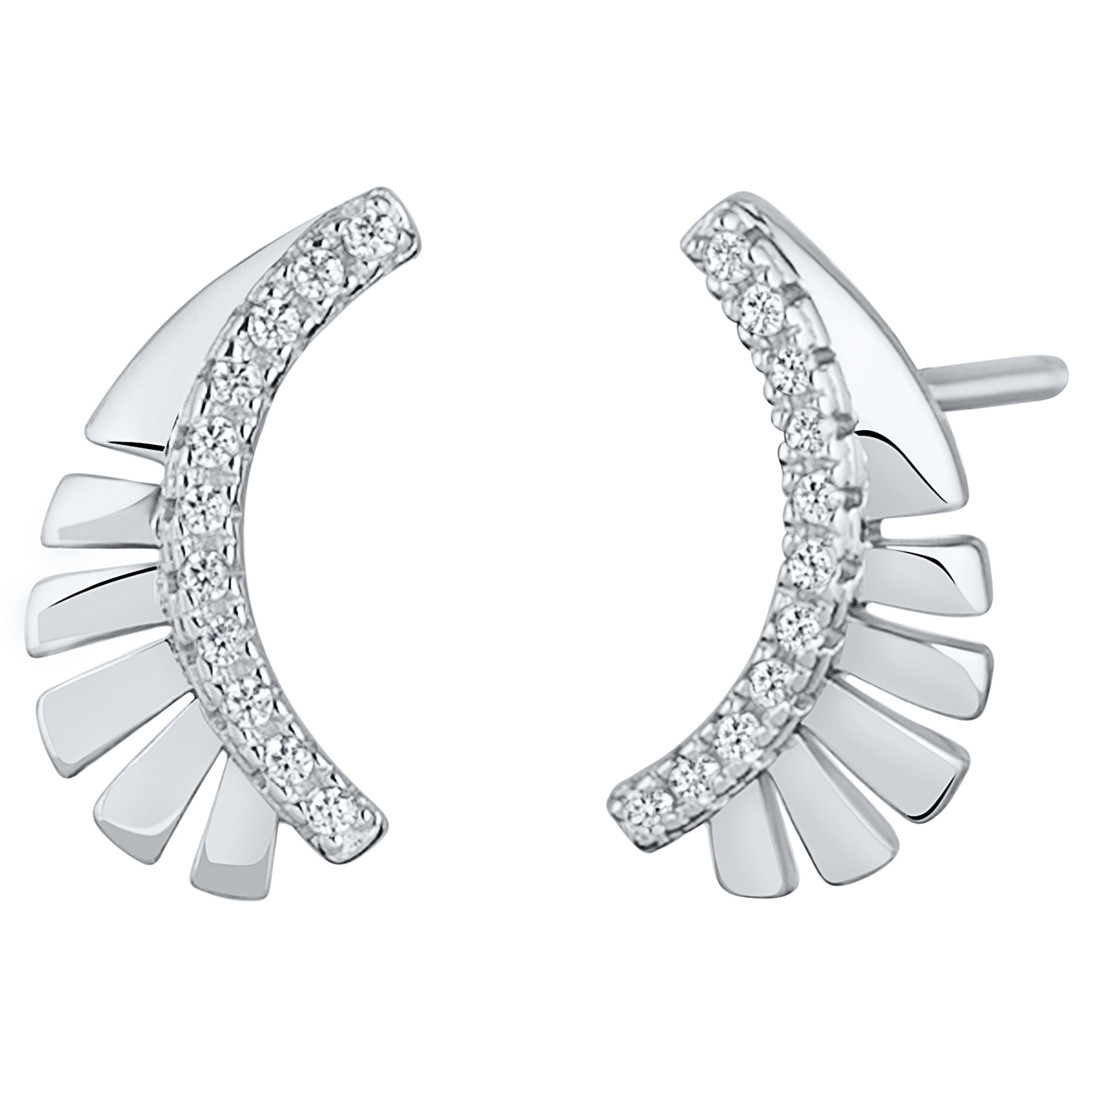 12ebf8563 Sterling Silver Simulated Diamonds Feather Crawler Earrings, SE9060